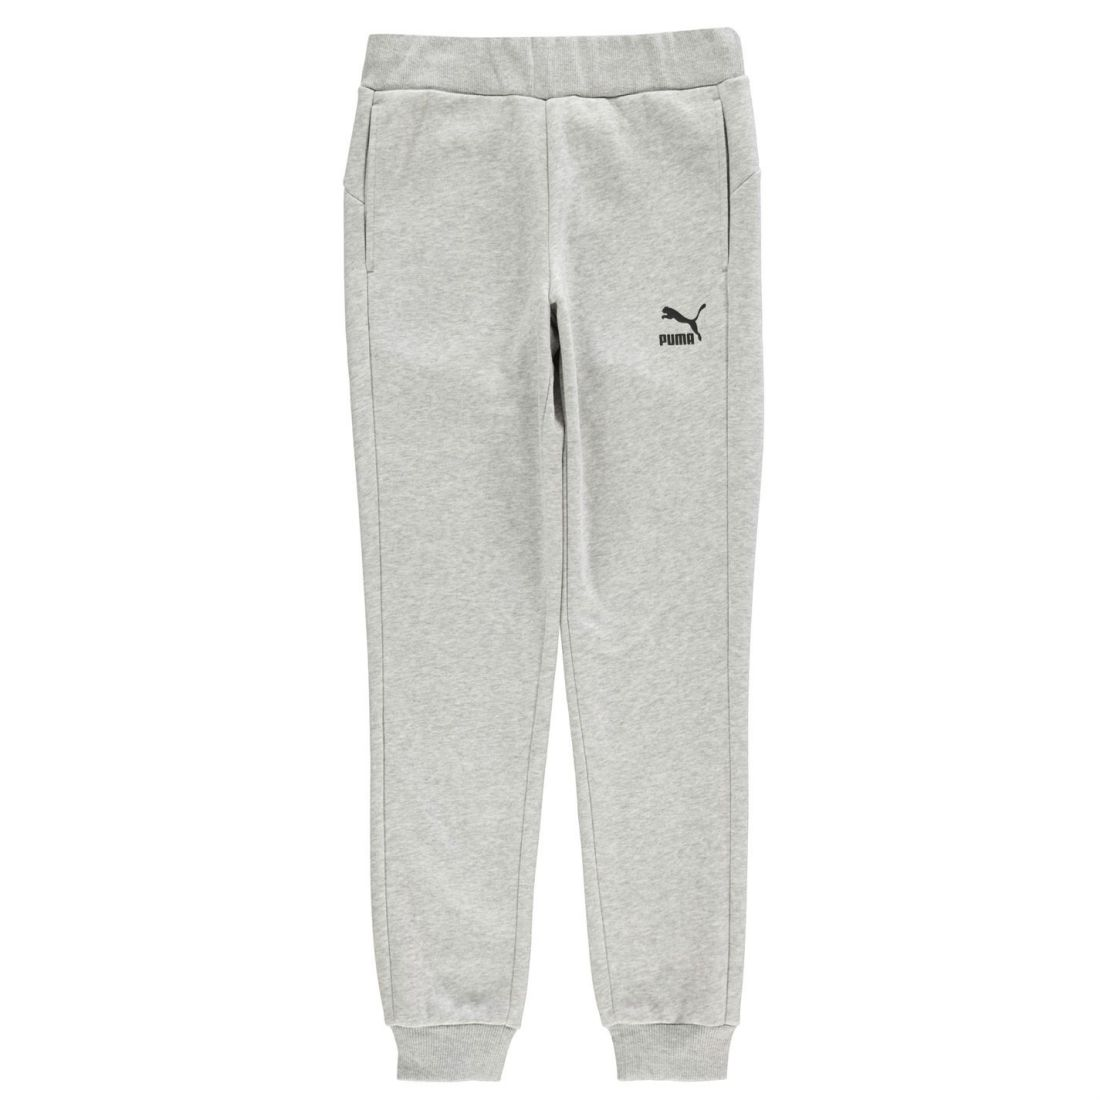 a5b9227b7aad Puma Kids Girls No1 Logo Pant Junior Fleece Jogging Bottoms Trousers Pants